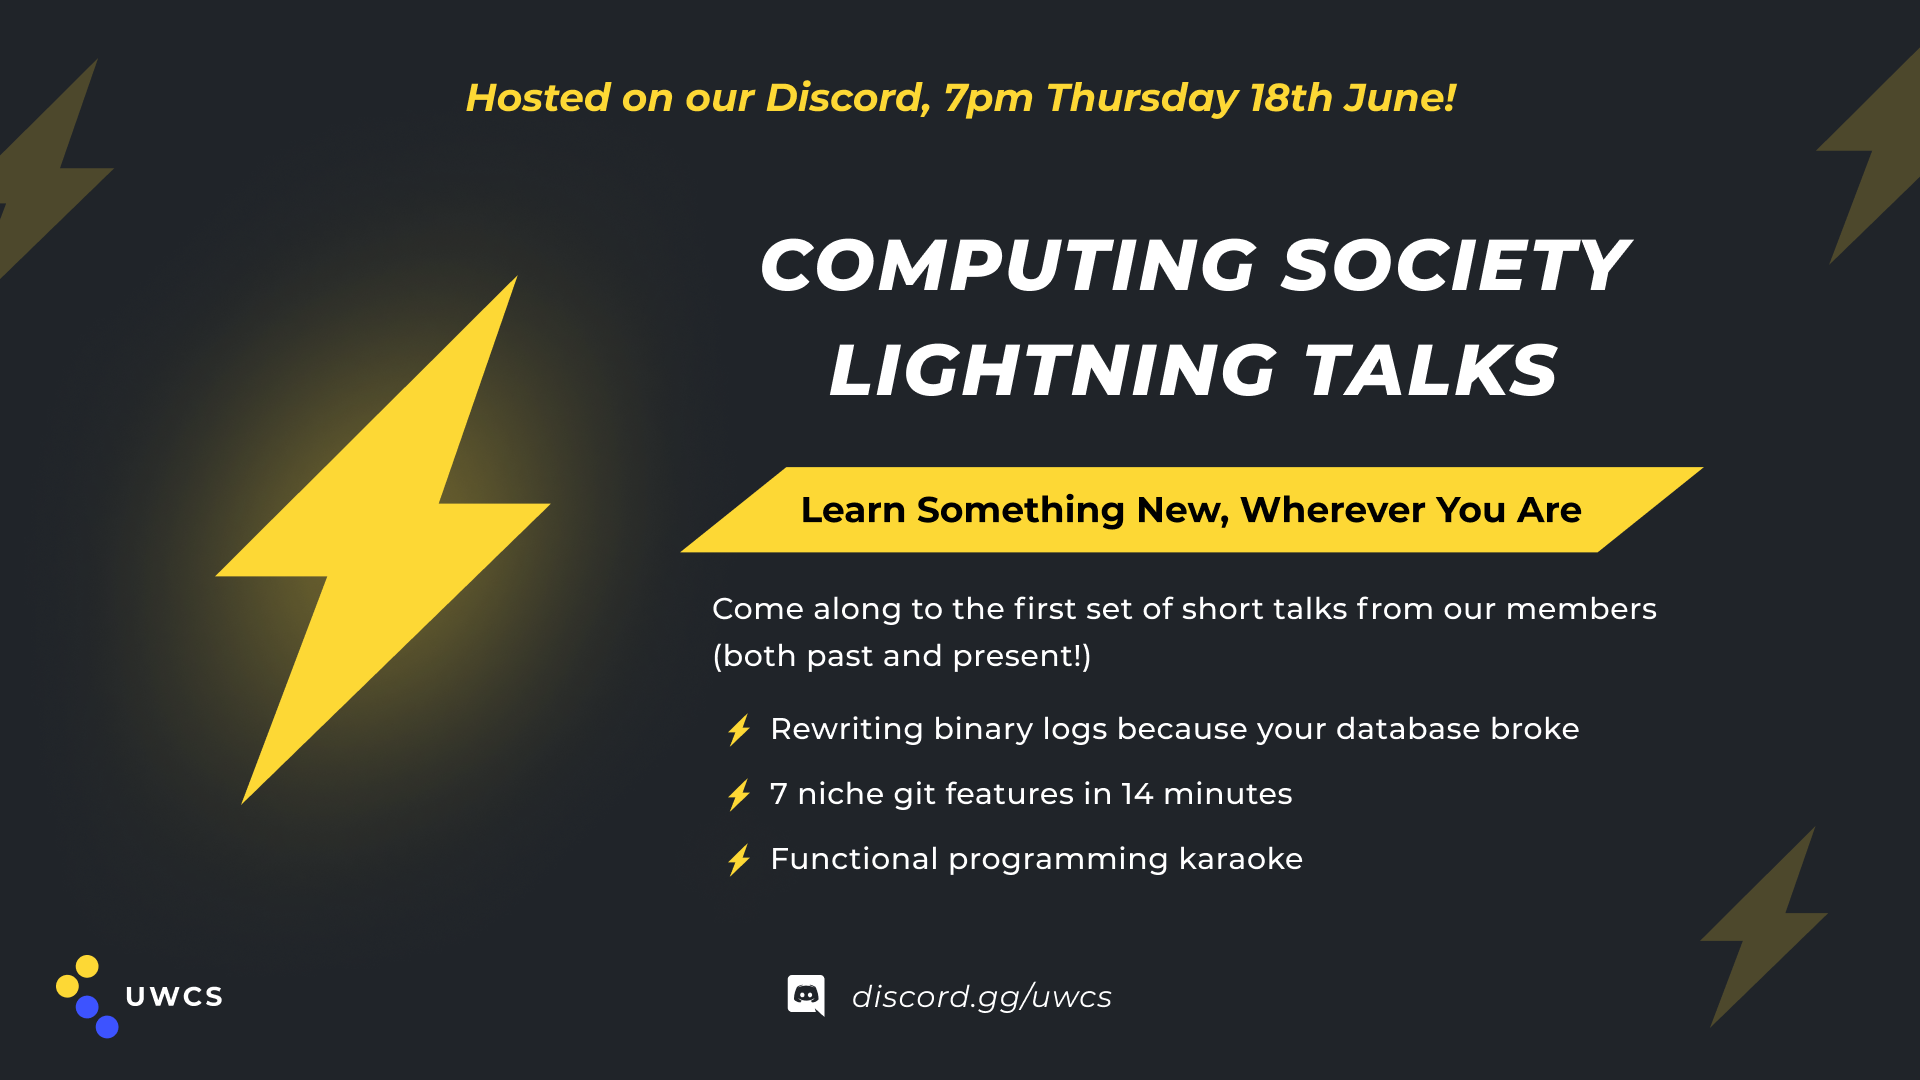 LightningTalks18th